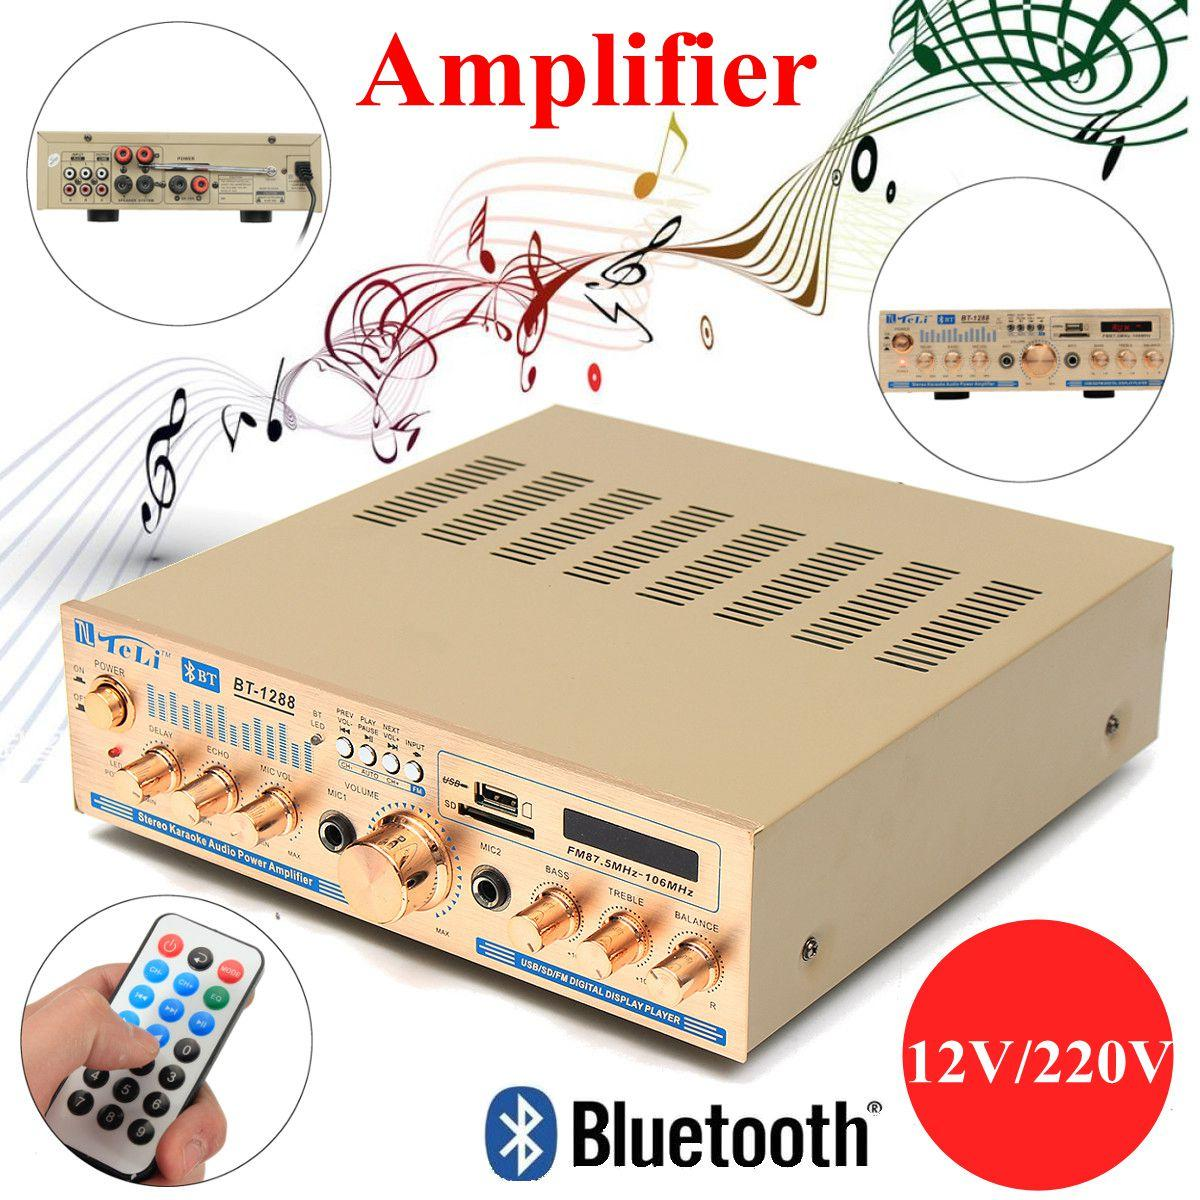 2*100w Amplifier Bluetooth 12V/220V Stereo Audio Amplifier for Home 2CH High power with card radio DC power amplifier